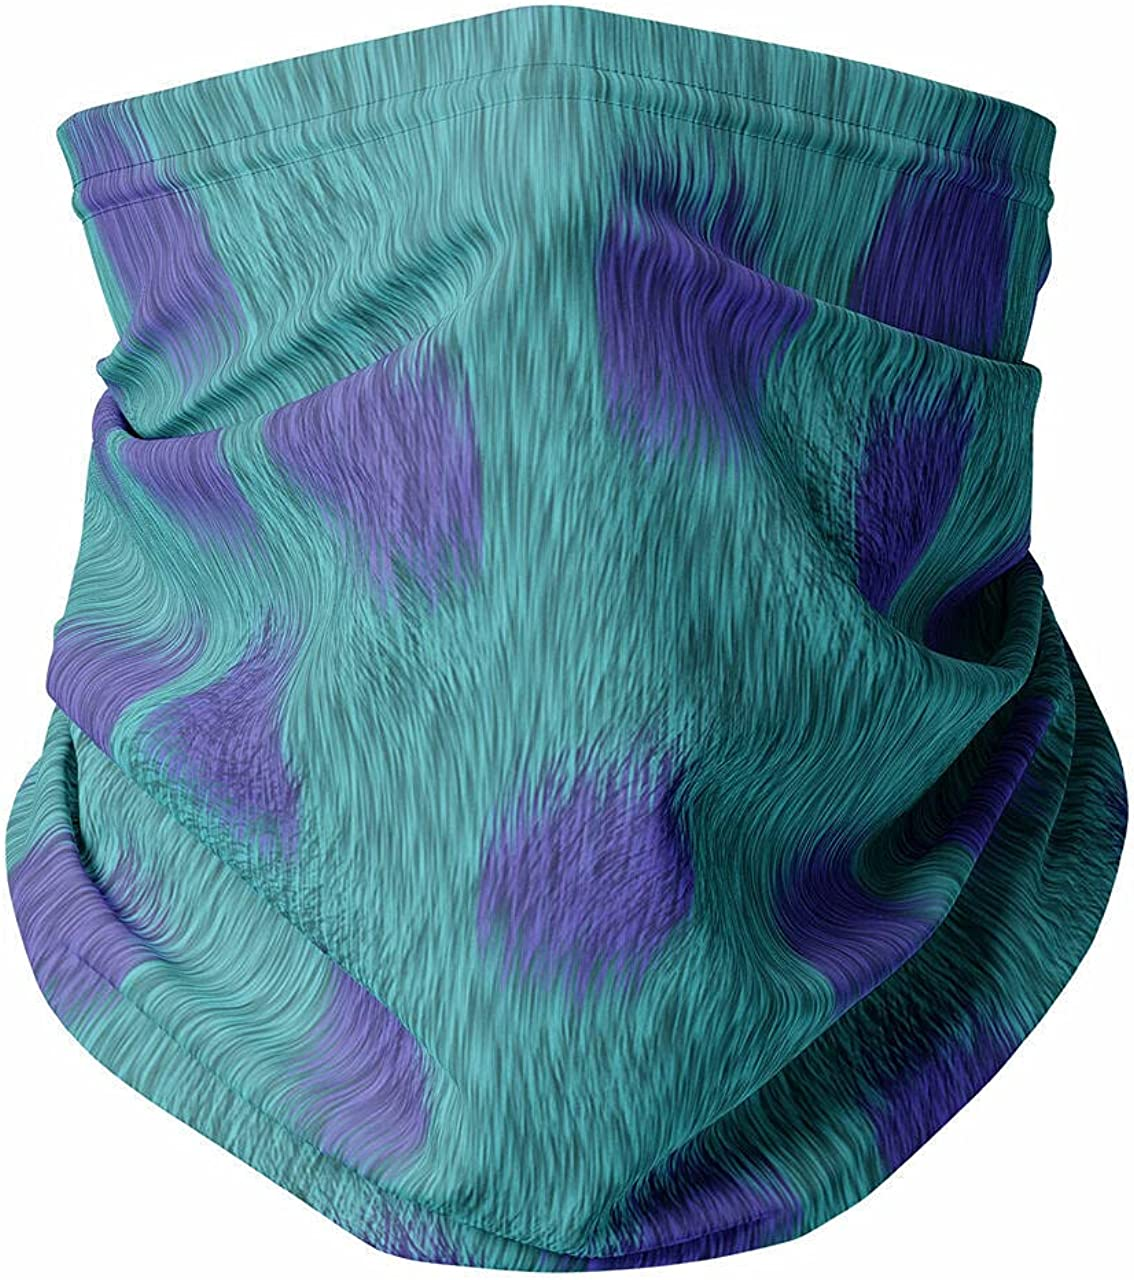 Neck Gaiter Face Covering - Sully Fur Monsters Inc Inspired